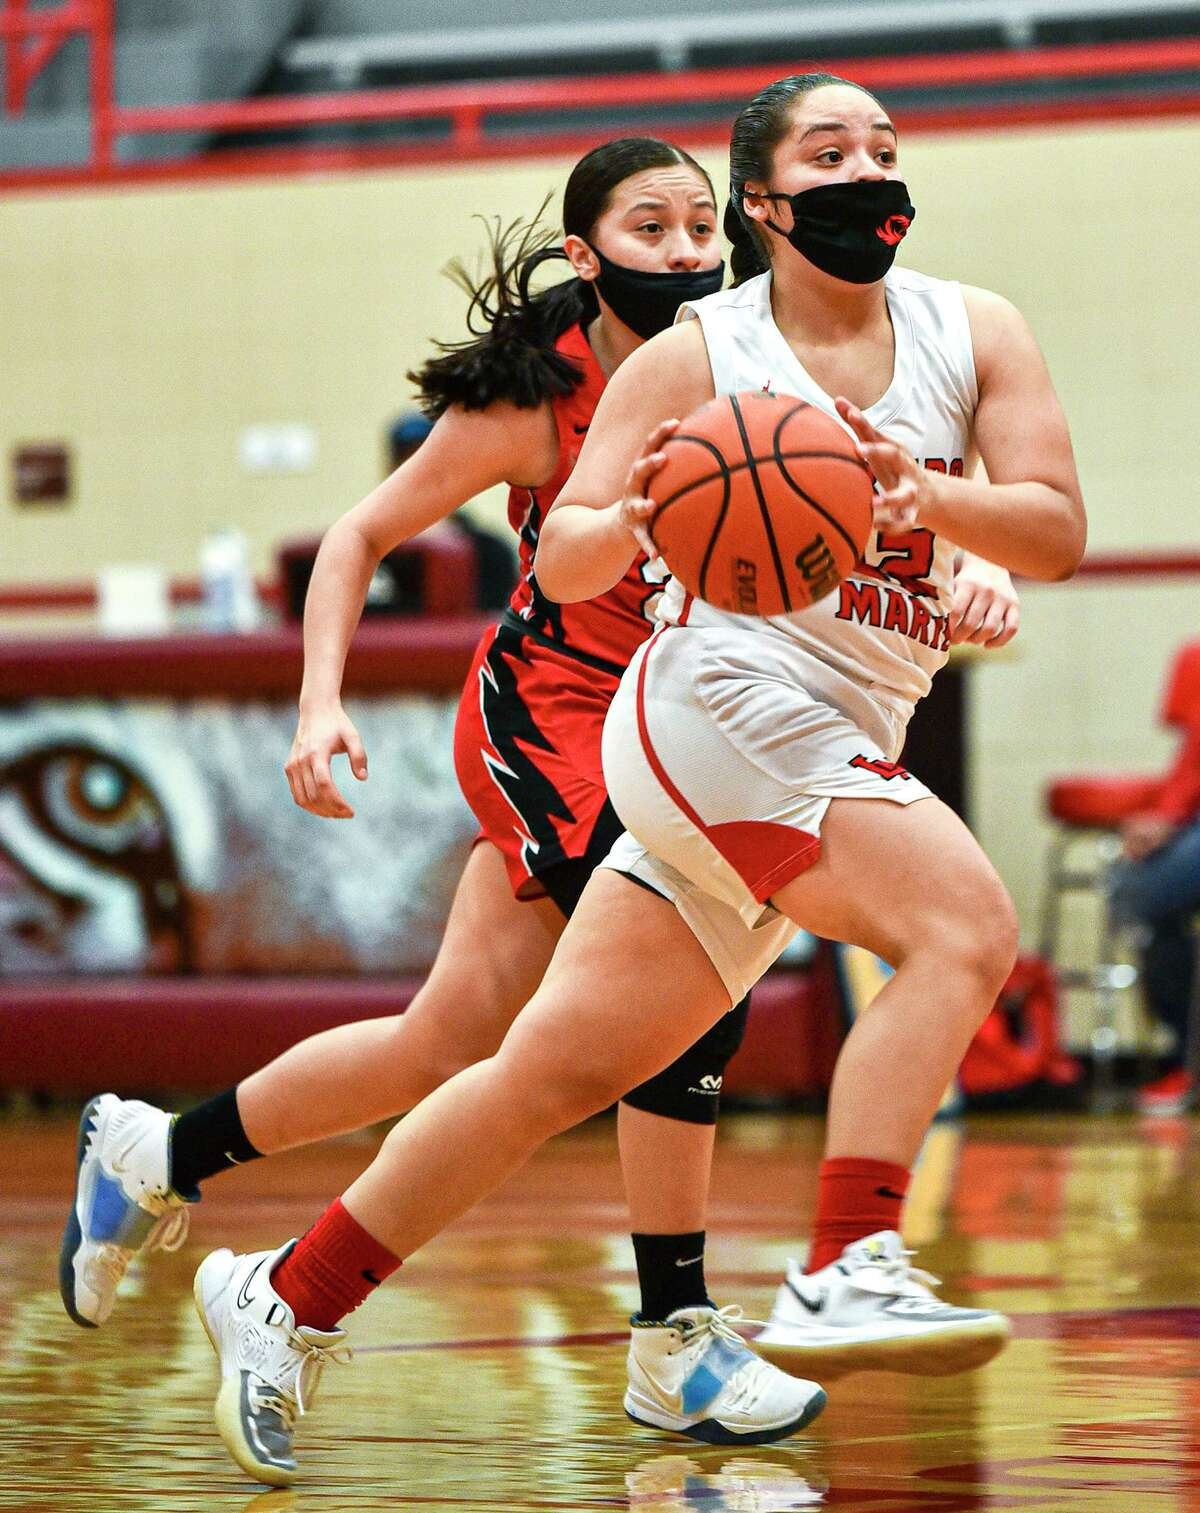 Martin High School Jari Garcia moves the ball down the court during a game against Rio Grande City High School Rattlers, Tuesday, Jan. 19, 2021, at Martin High School.